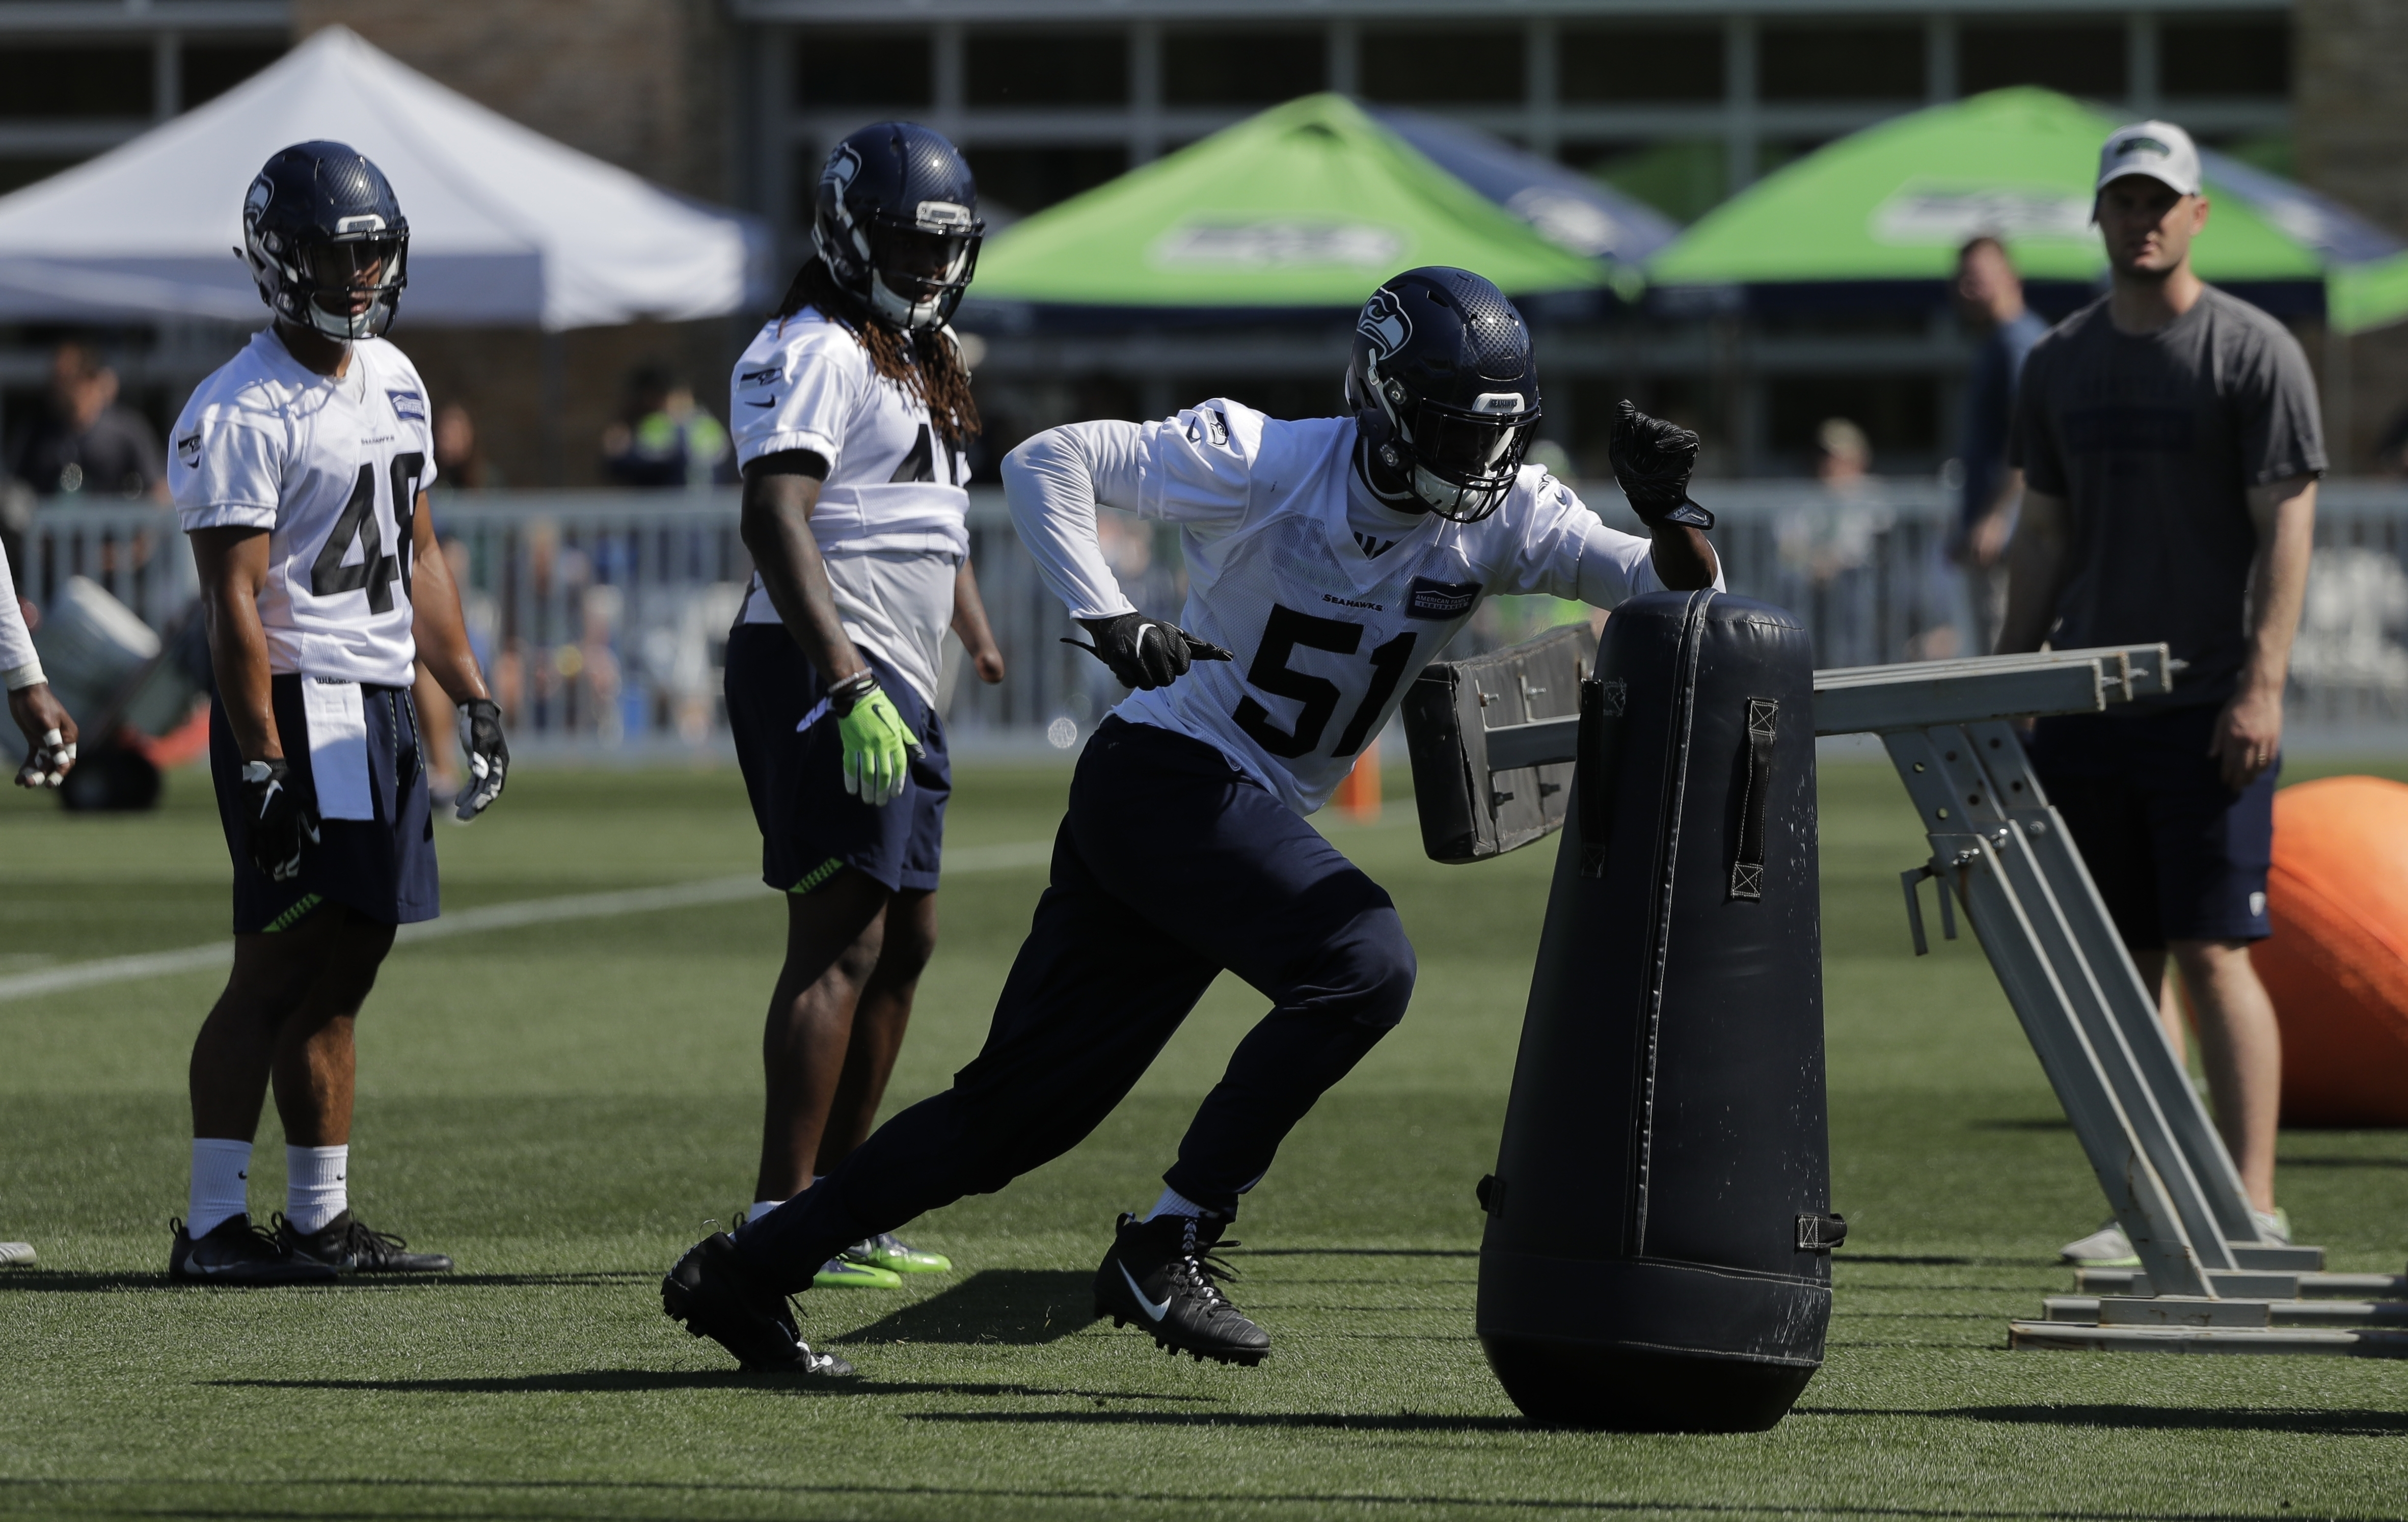 Seahawks hope Barkevious Mingo can be dual threat on defense